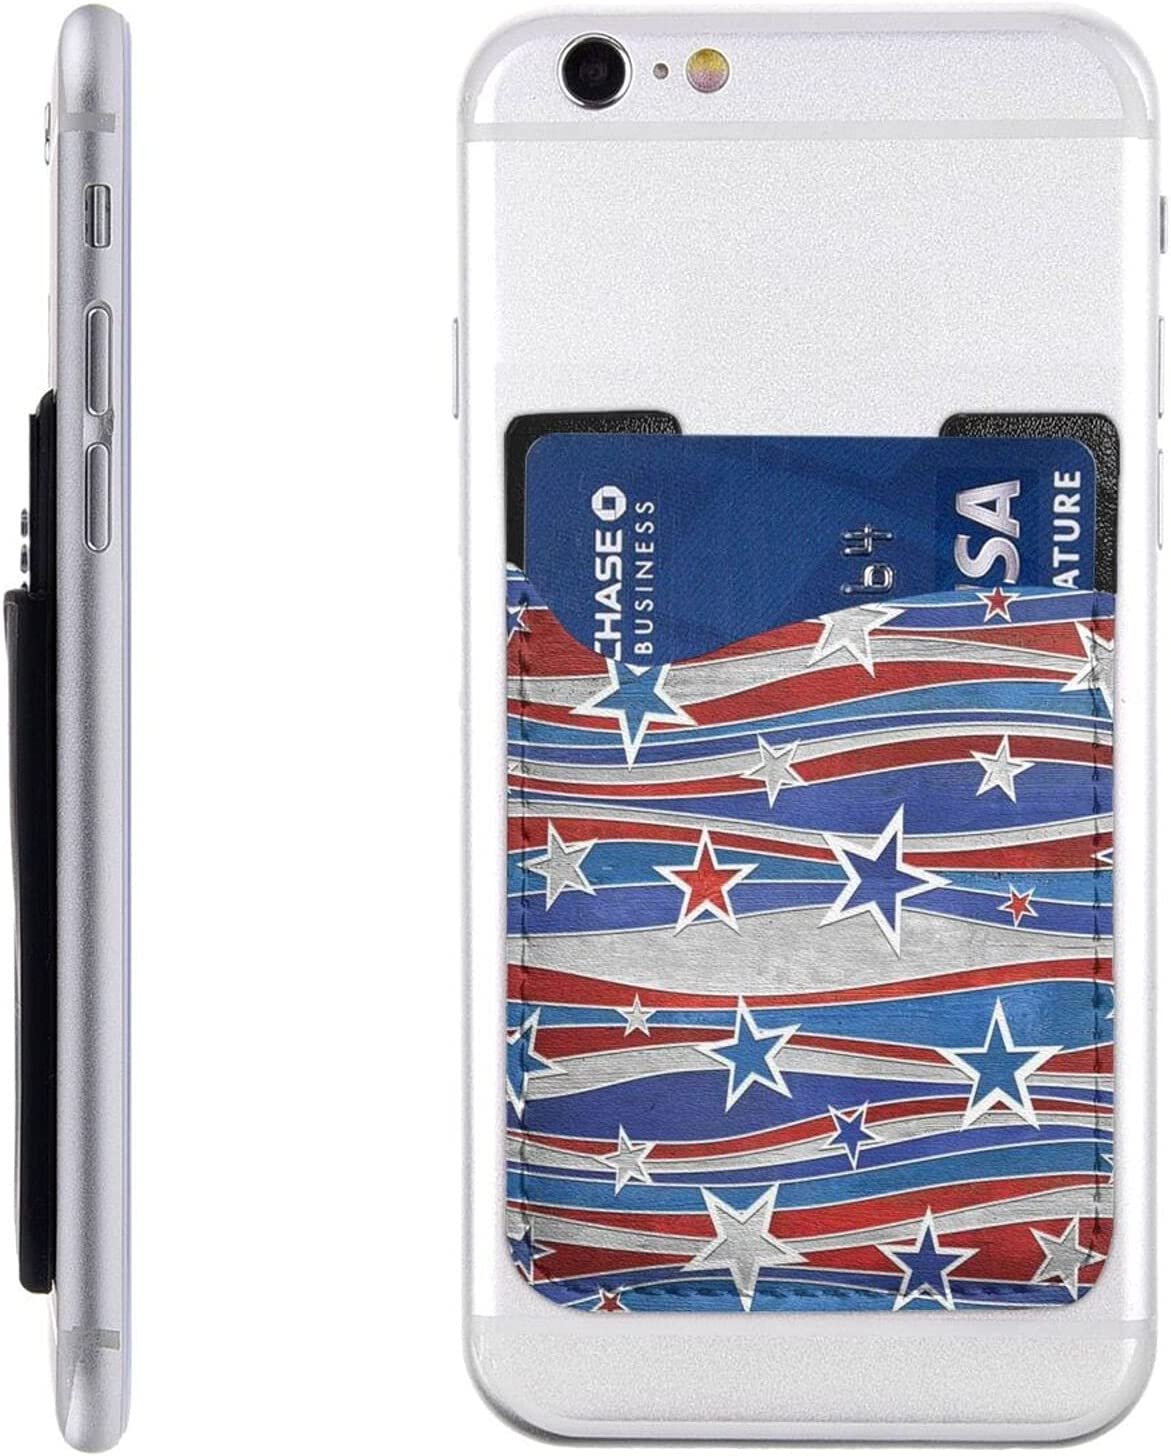 Patriotic Max 68% OFF Stars Strips Independence Day P Cell Card Phone Holder store